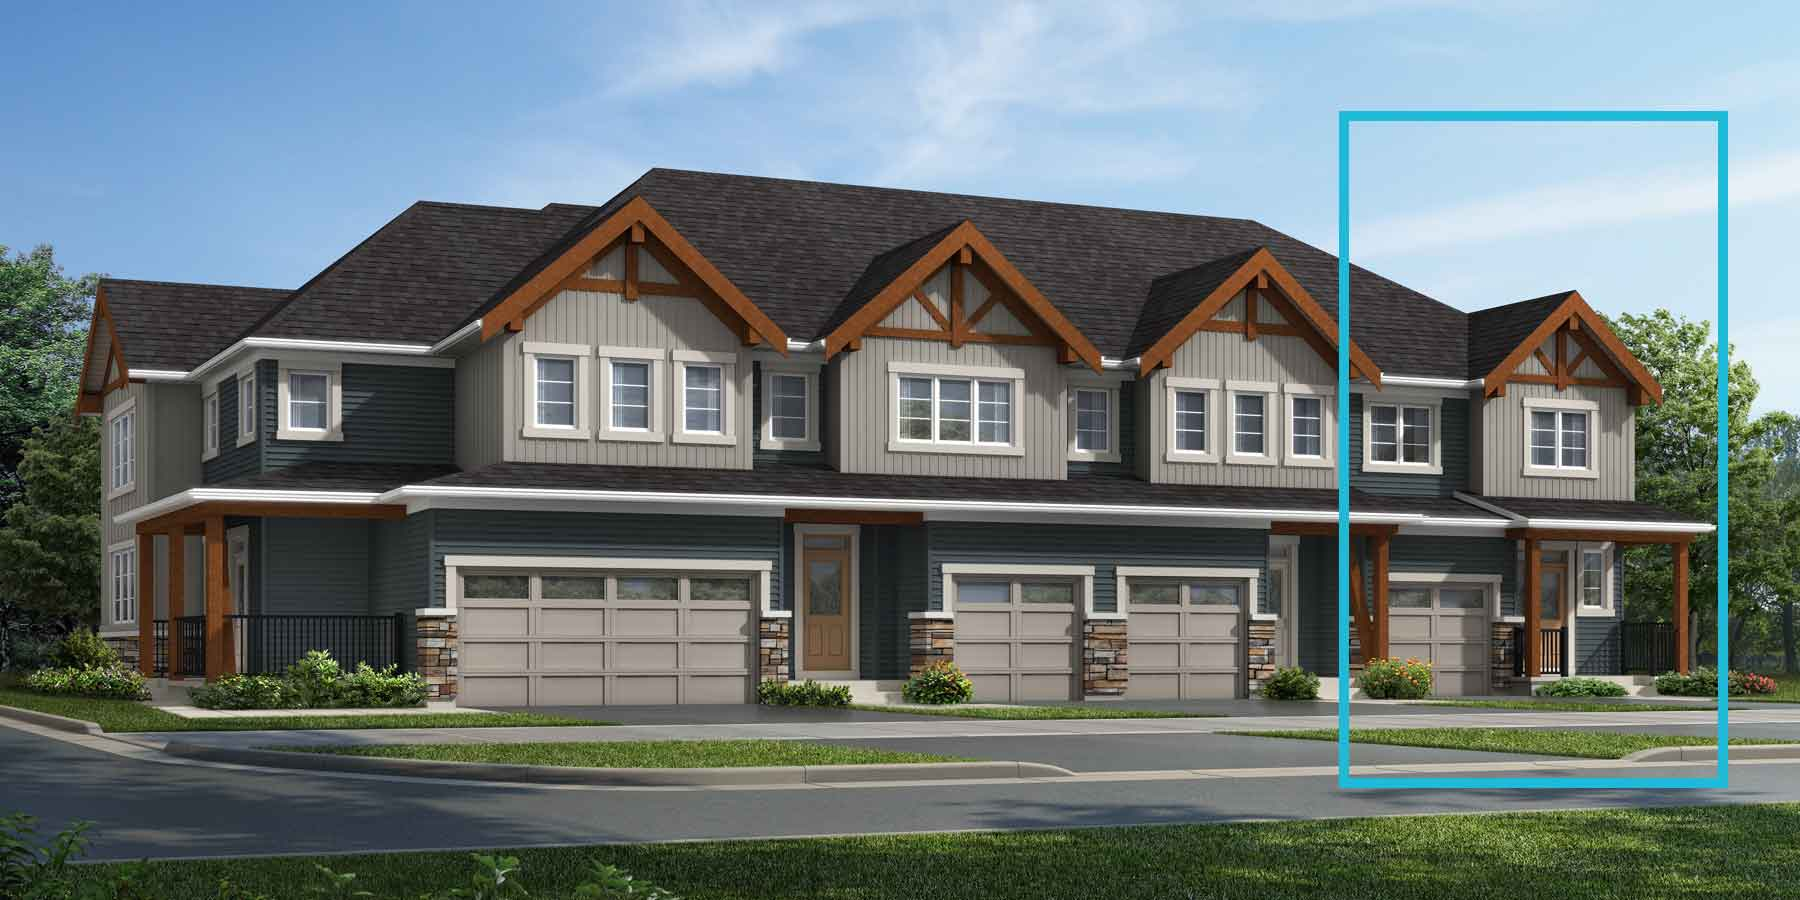 Atlas End Plan TownHomes at Carrington in Calgary Alberta by Mattamy Homes